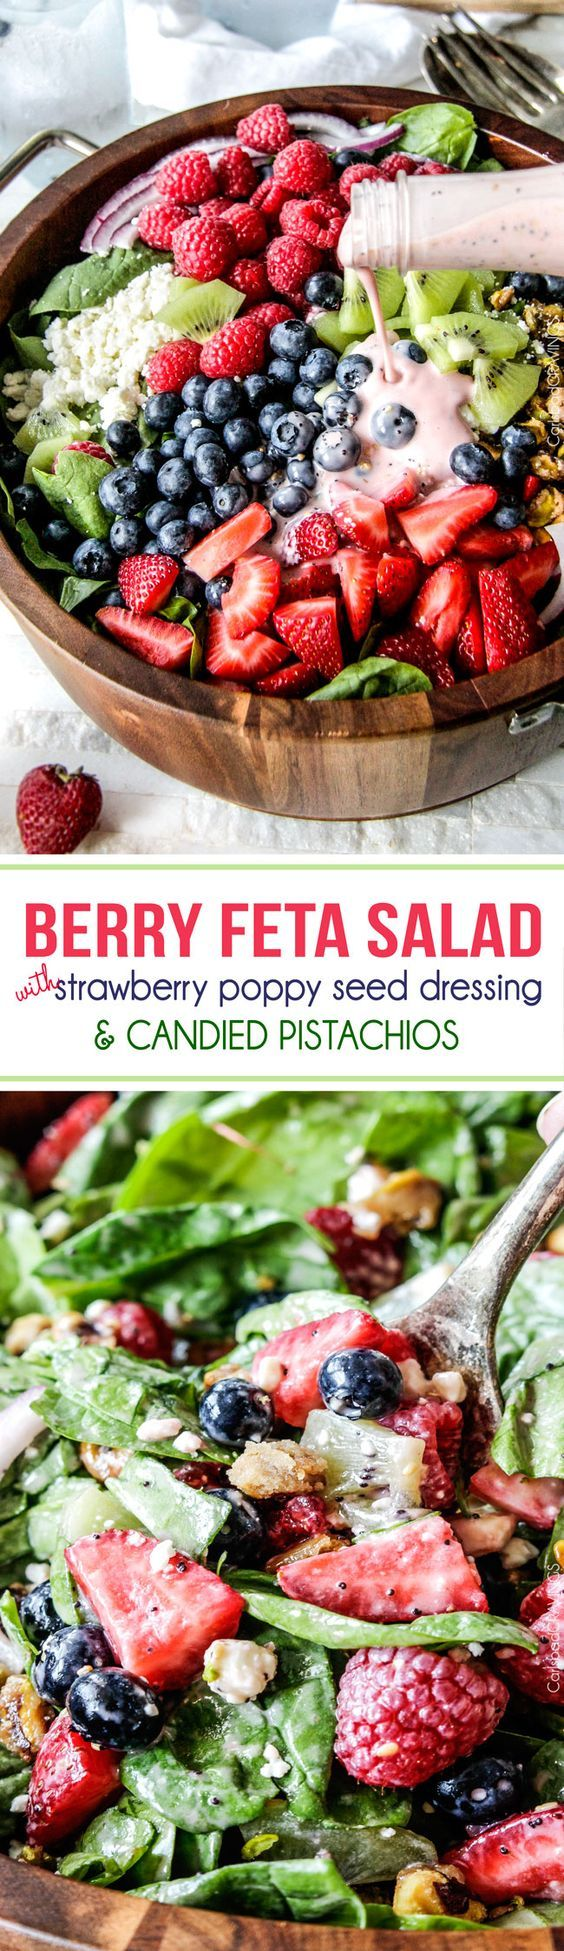 Berry Feta Spinach Salad with Creamy Strawberry Poppy Seed Dressing and CANDIED pistachios is so easy delicious and beautiful for company it is sure to become a new favorite!